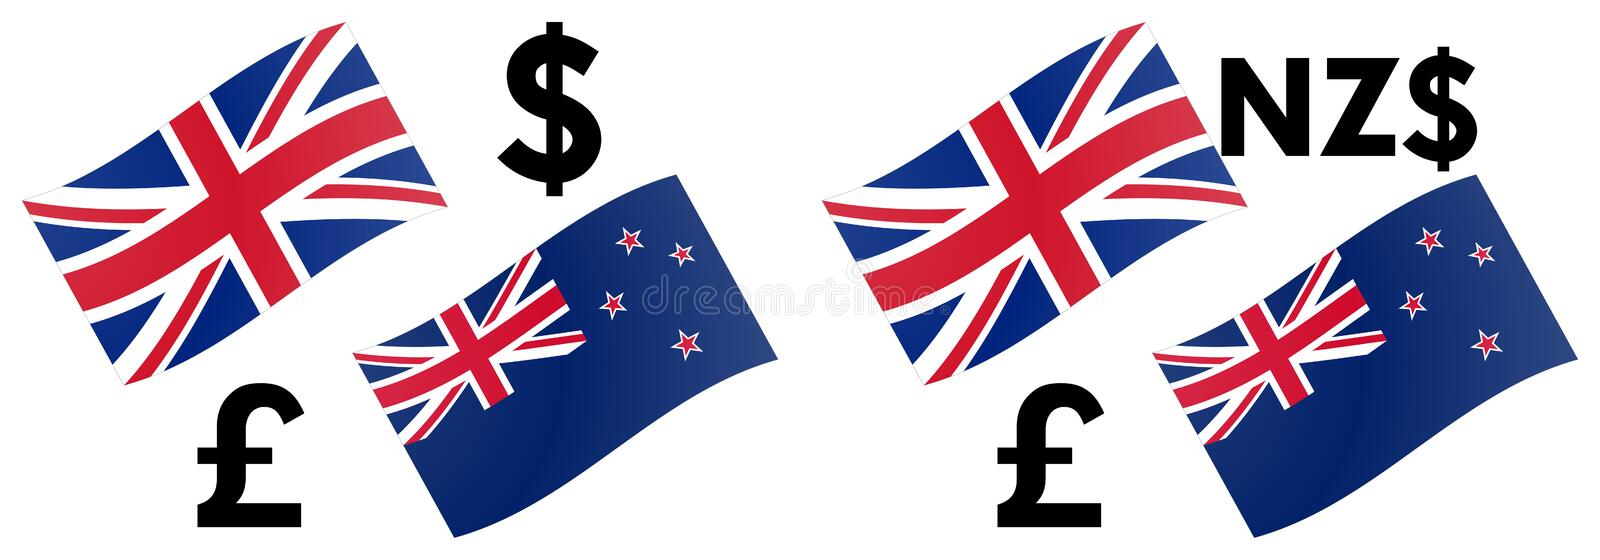 GBPNZD forex currency pair vector illustration. United Kingdom and New Zealand flag, with Pound and Dollar symbol.  vector illustration